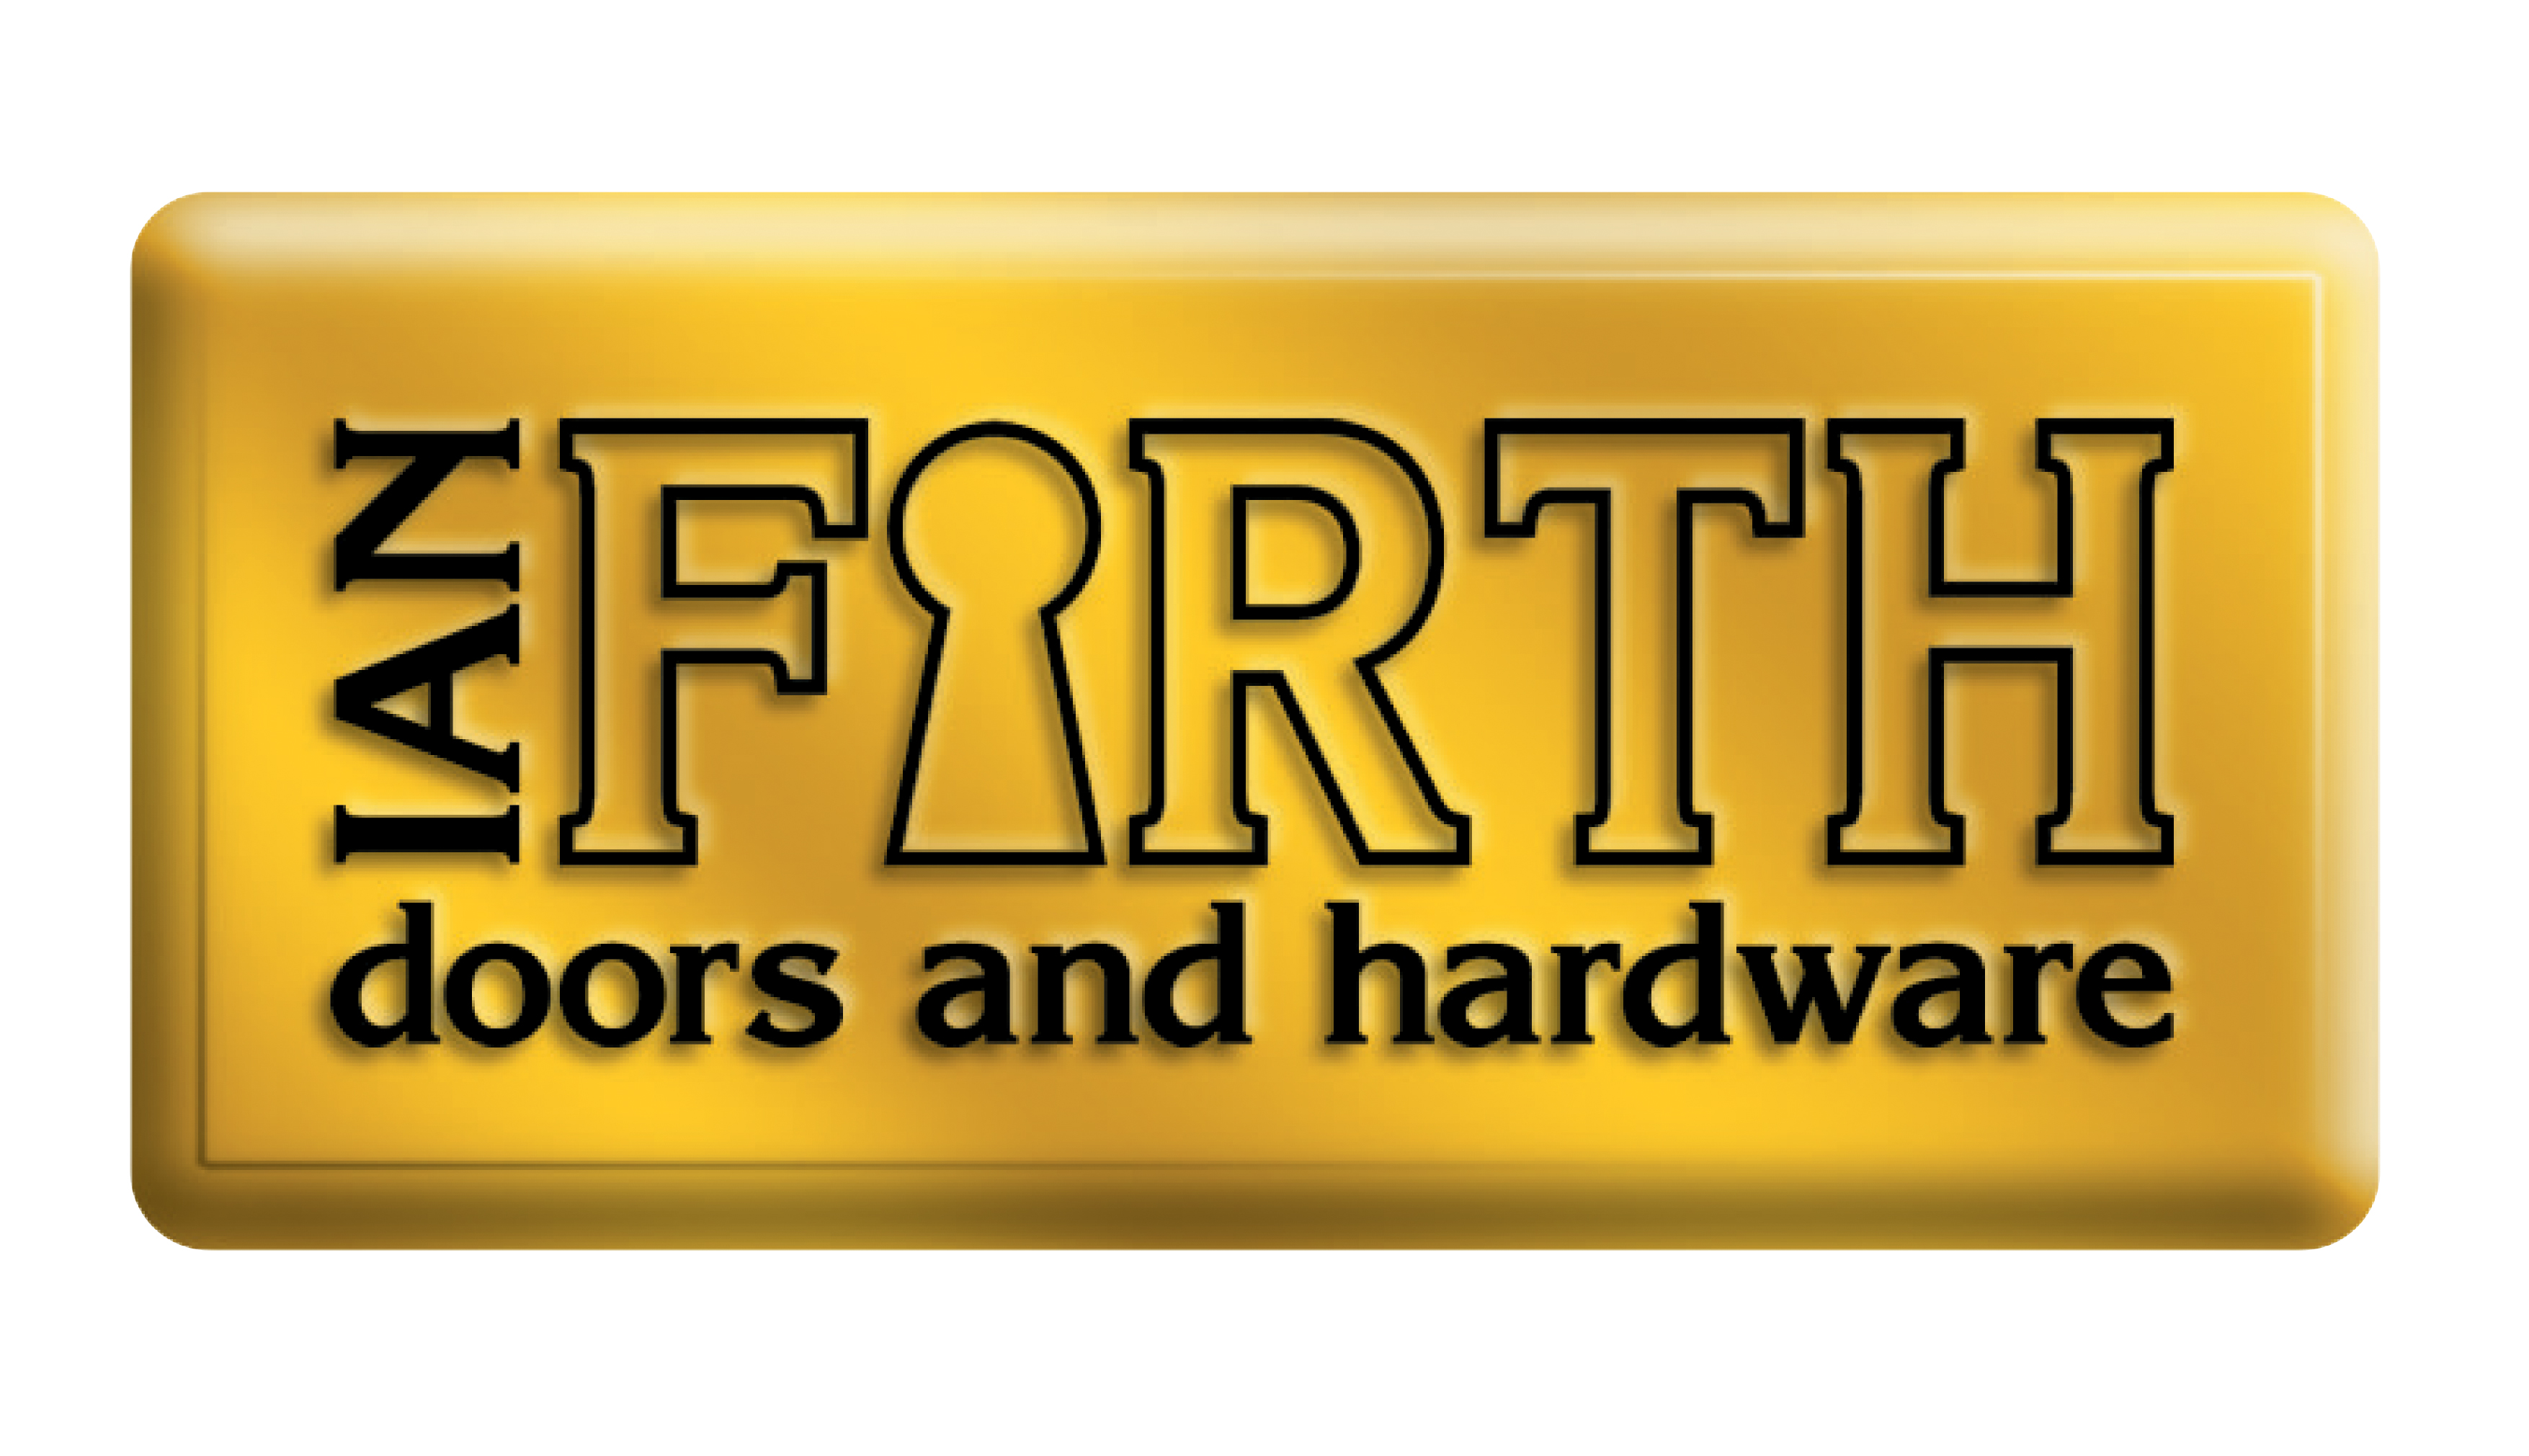 Ian Firth Hardware Limited